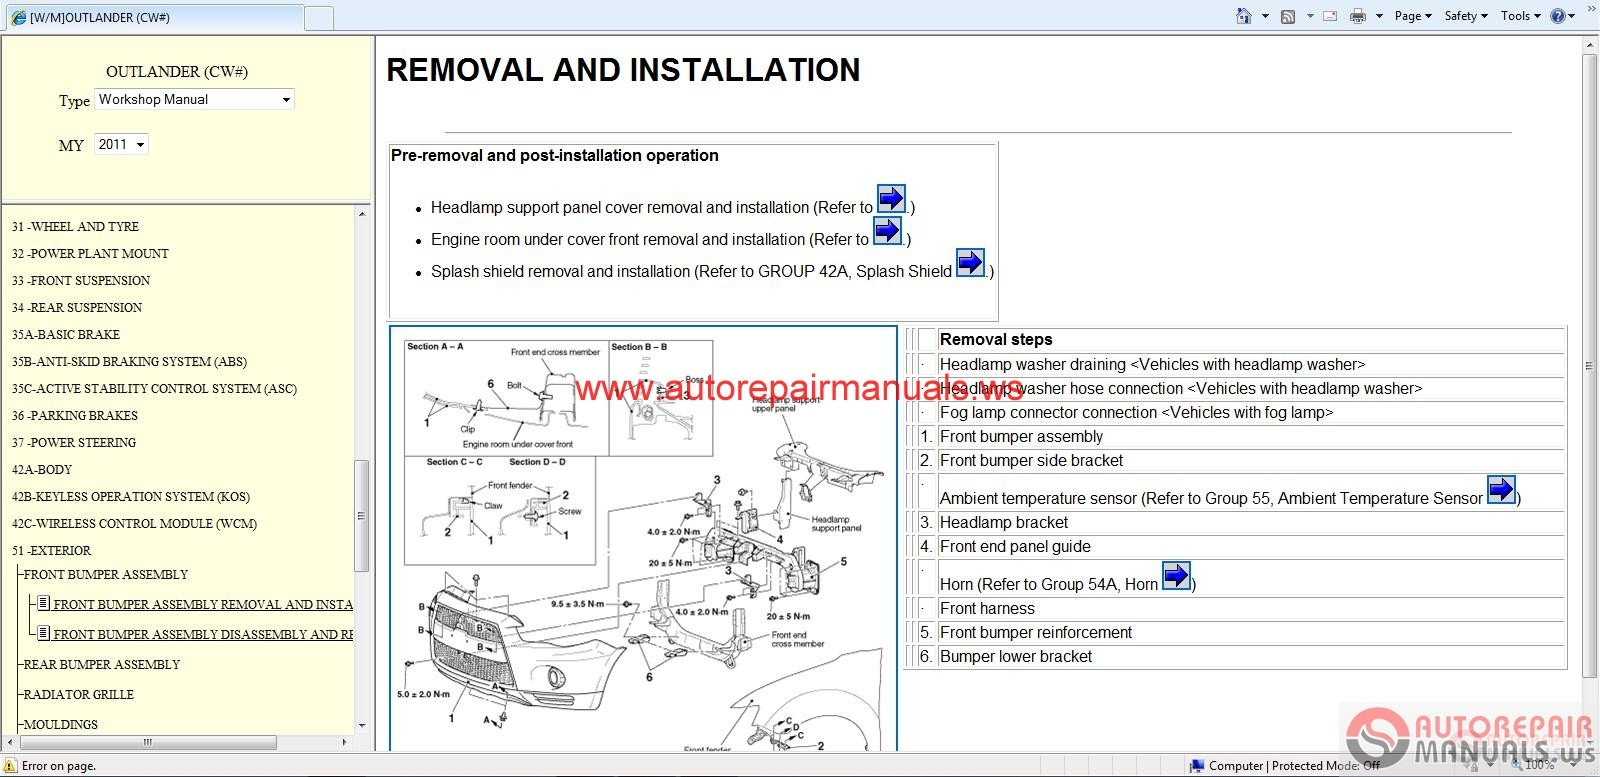 Mitsubishi Outlander 2011 Workshop Manual